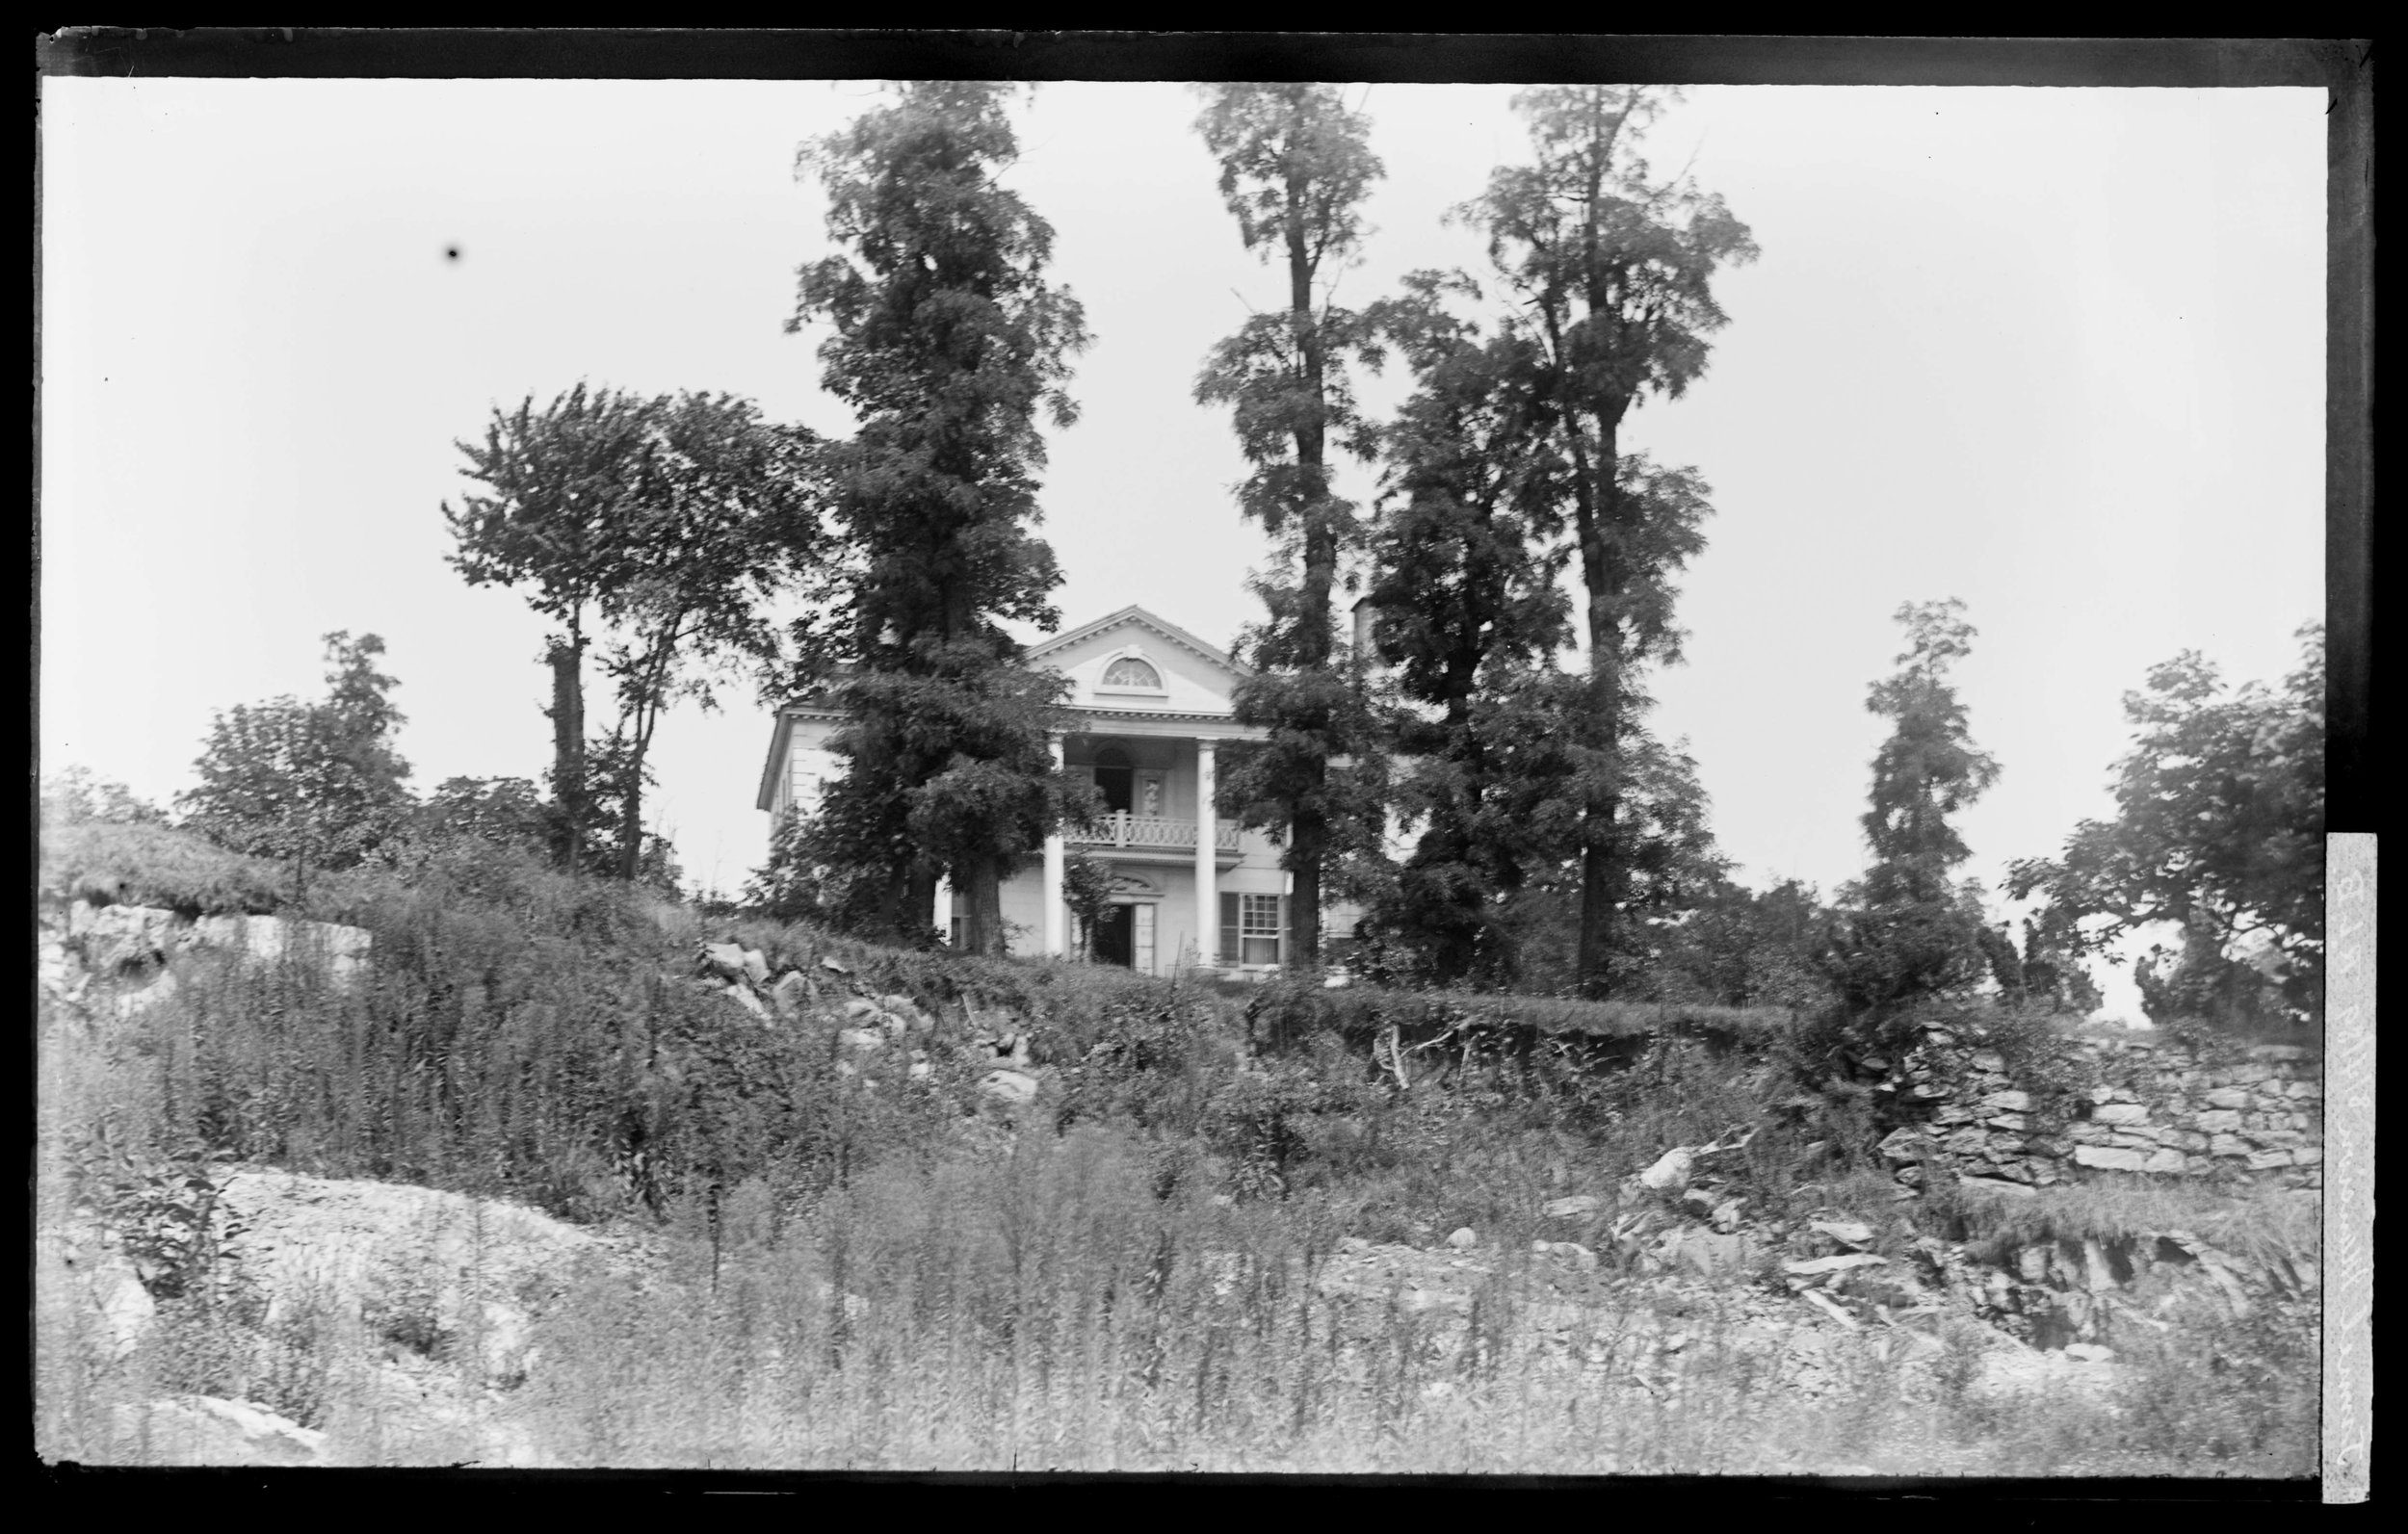 The Morris Jumel mansion, built in the 1760s and still standing today